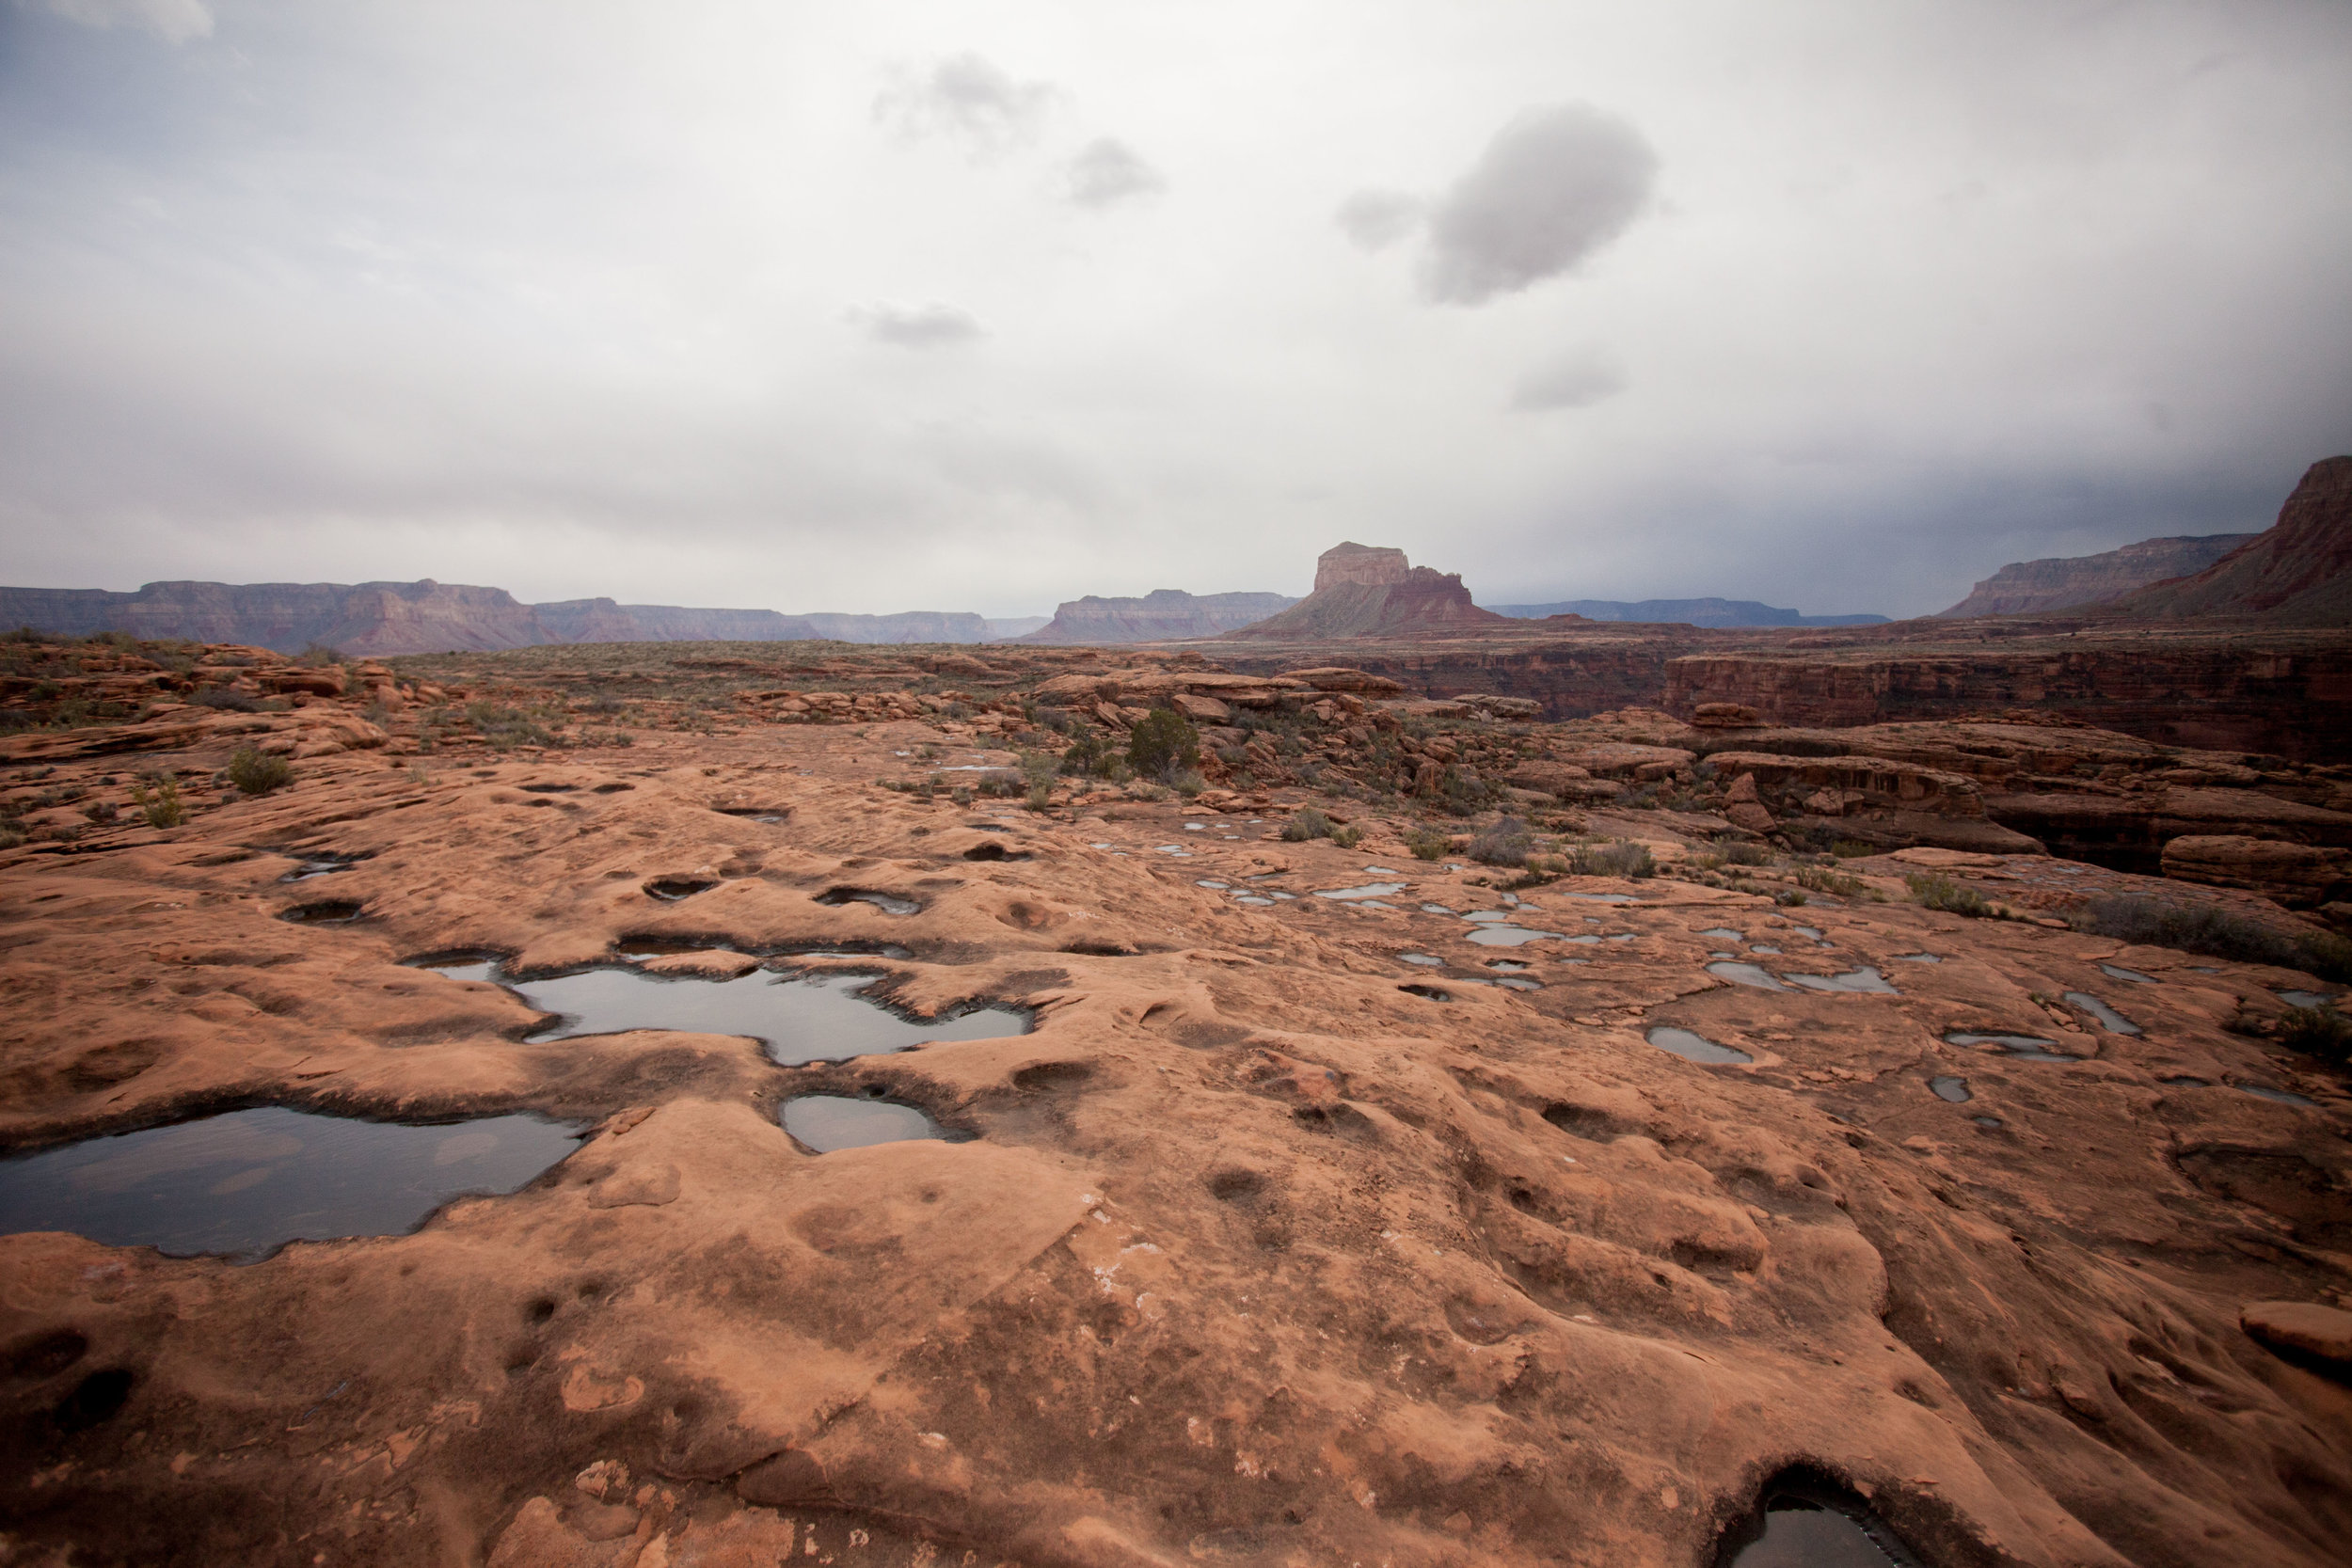 Perched on top of the Esplanade, watching storms roll in as we tried to decide if we should drop into a slot canyon.